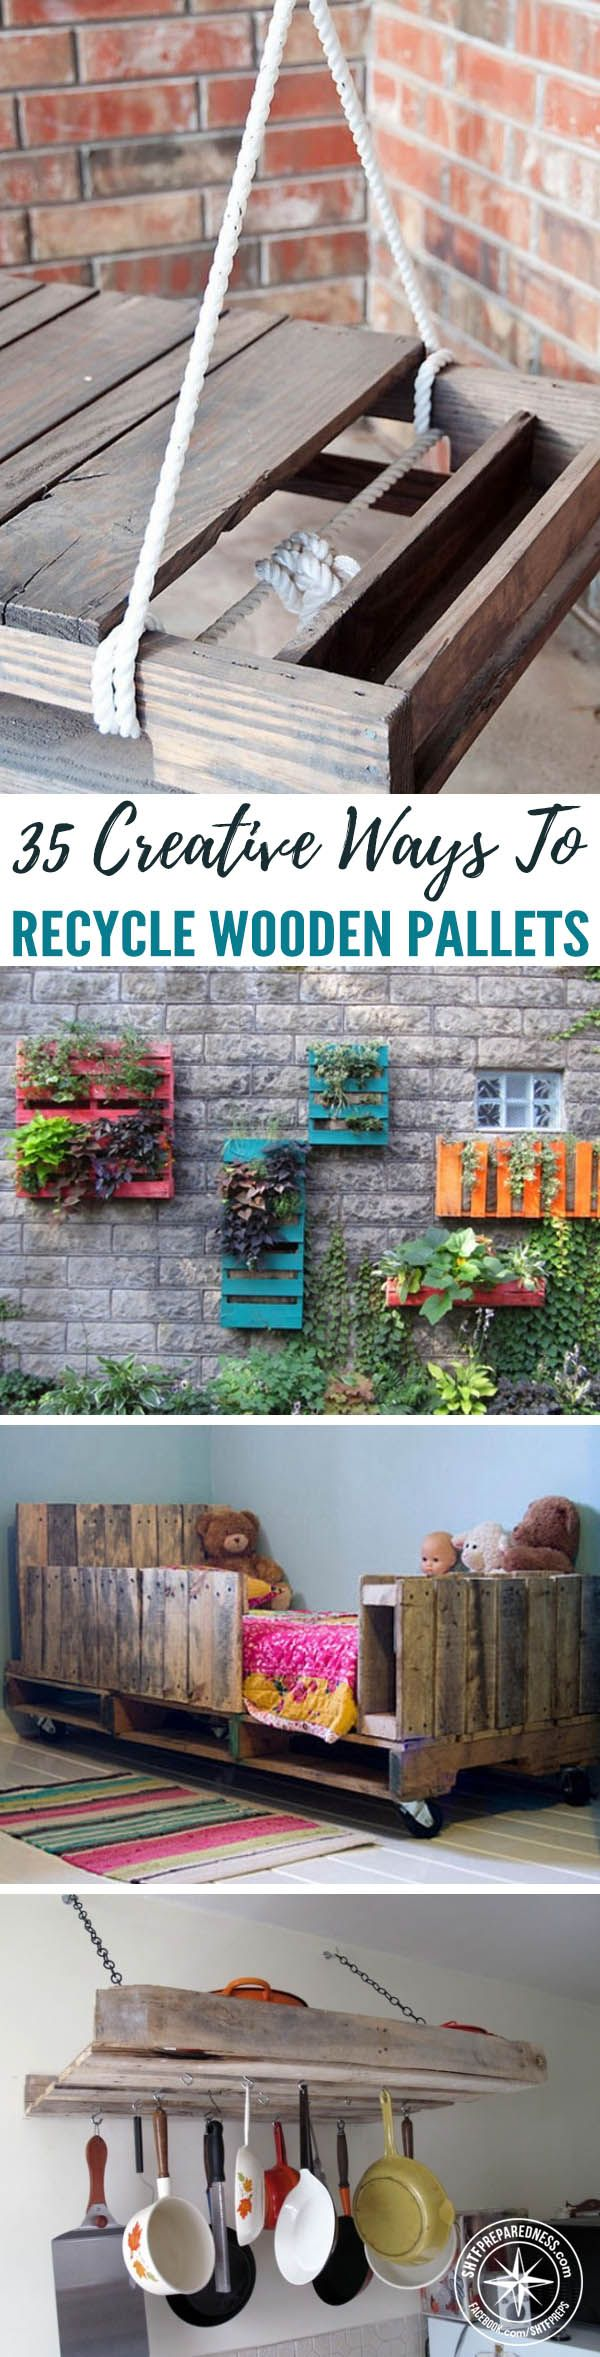 35 Creative Ways To Recycle Wooden Pallets — When you're sticking to a self-sufficient, green, and economic lifestyle, you become familiar with salvaging and repurposing materials. Pallets are great for repurposing since they have a sturdy build and are usually made out of quality wood.